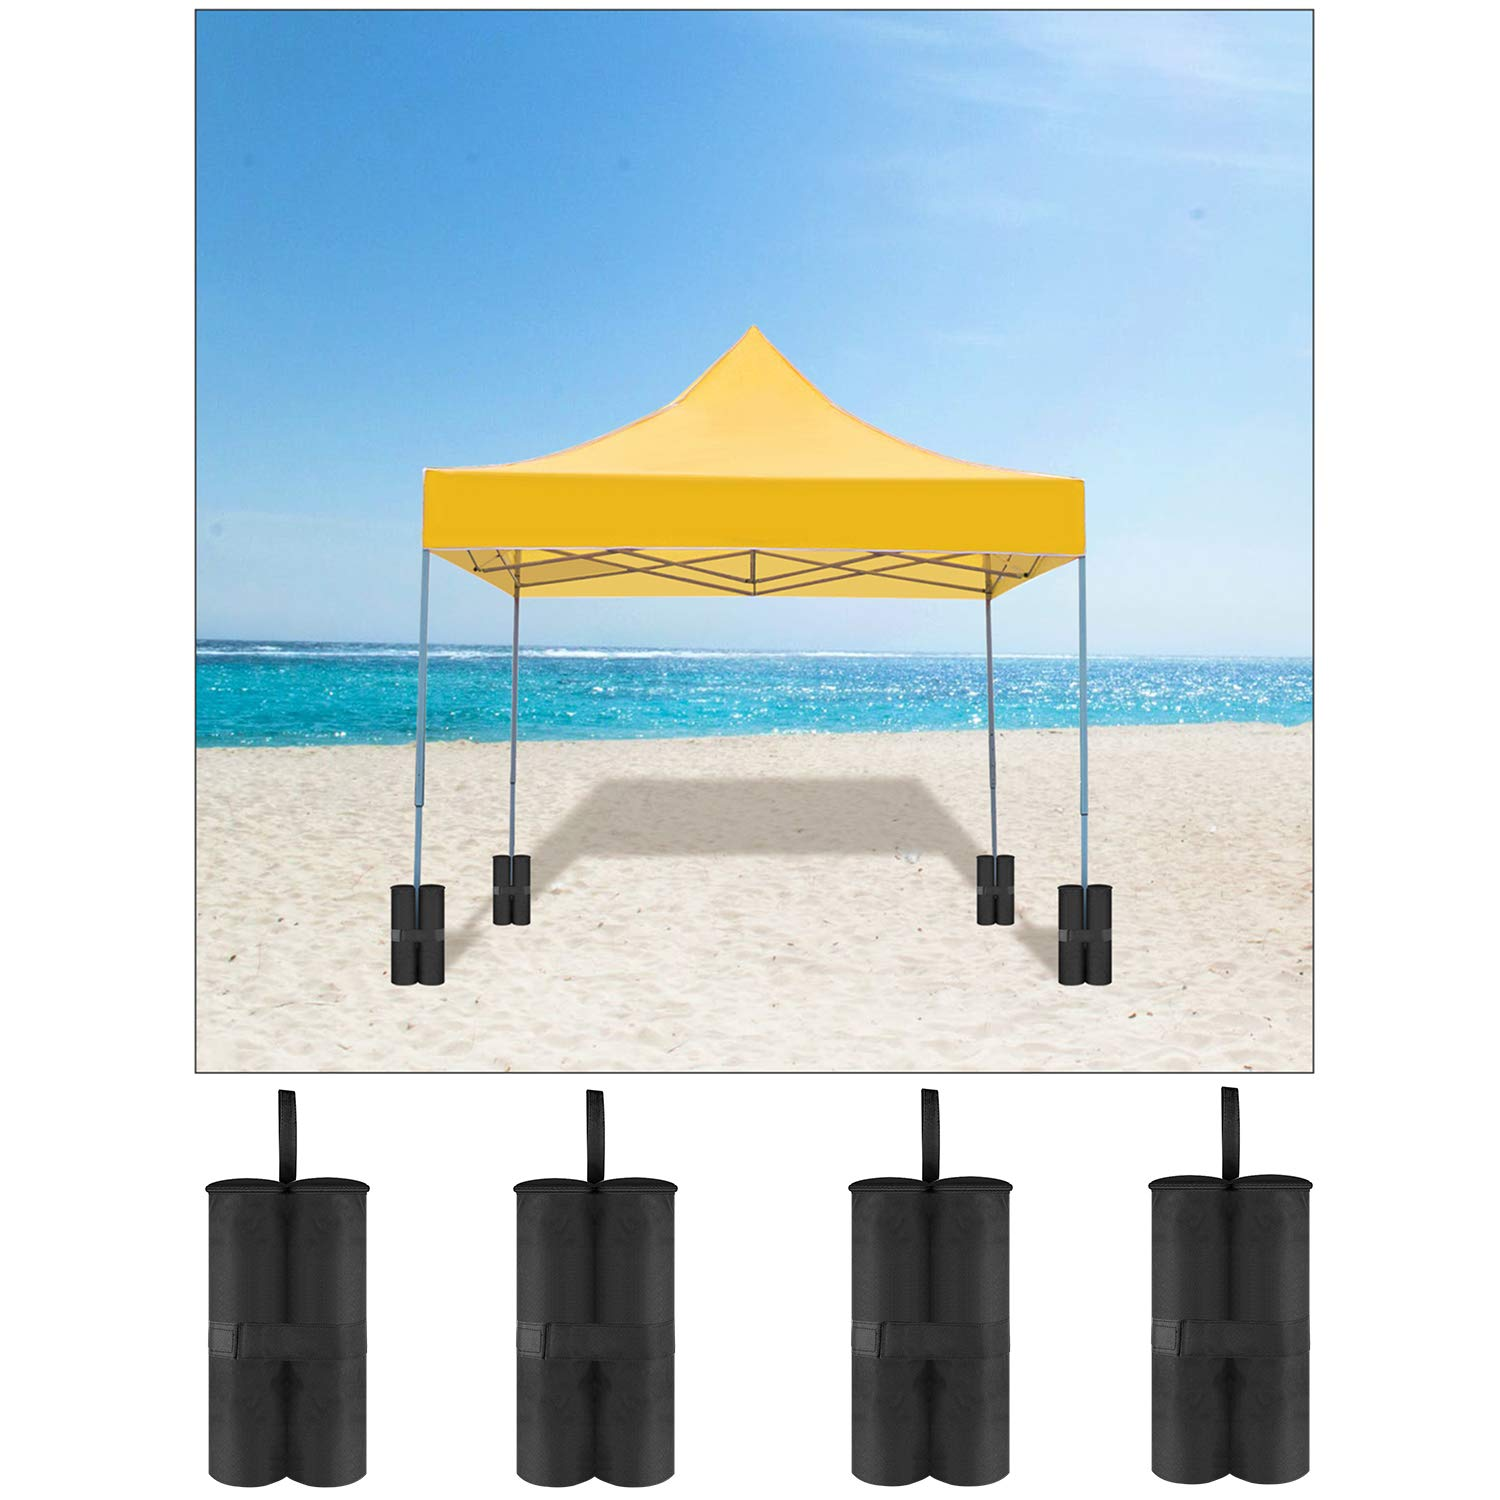 Neewer 4-Packs Weight Bags Leg Sandbags Weighted Base for Anchoring Canopy Tent Sunshade Outdoor Shelter 15.74 x 9.45 x 21.25 inches 40 x 24 x 54 Centimeters Black,Empty Bag